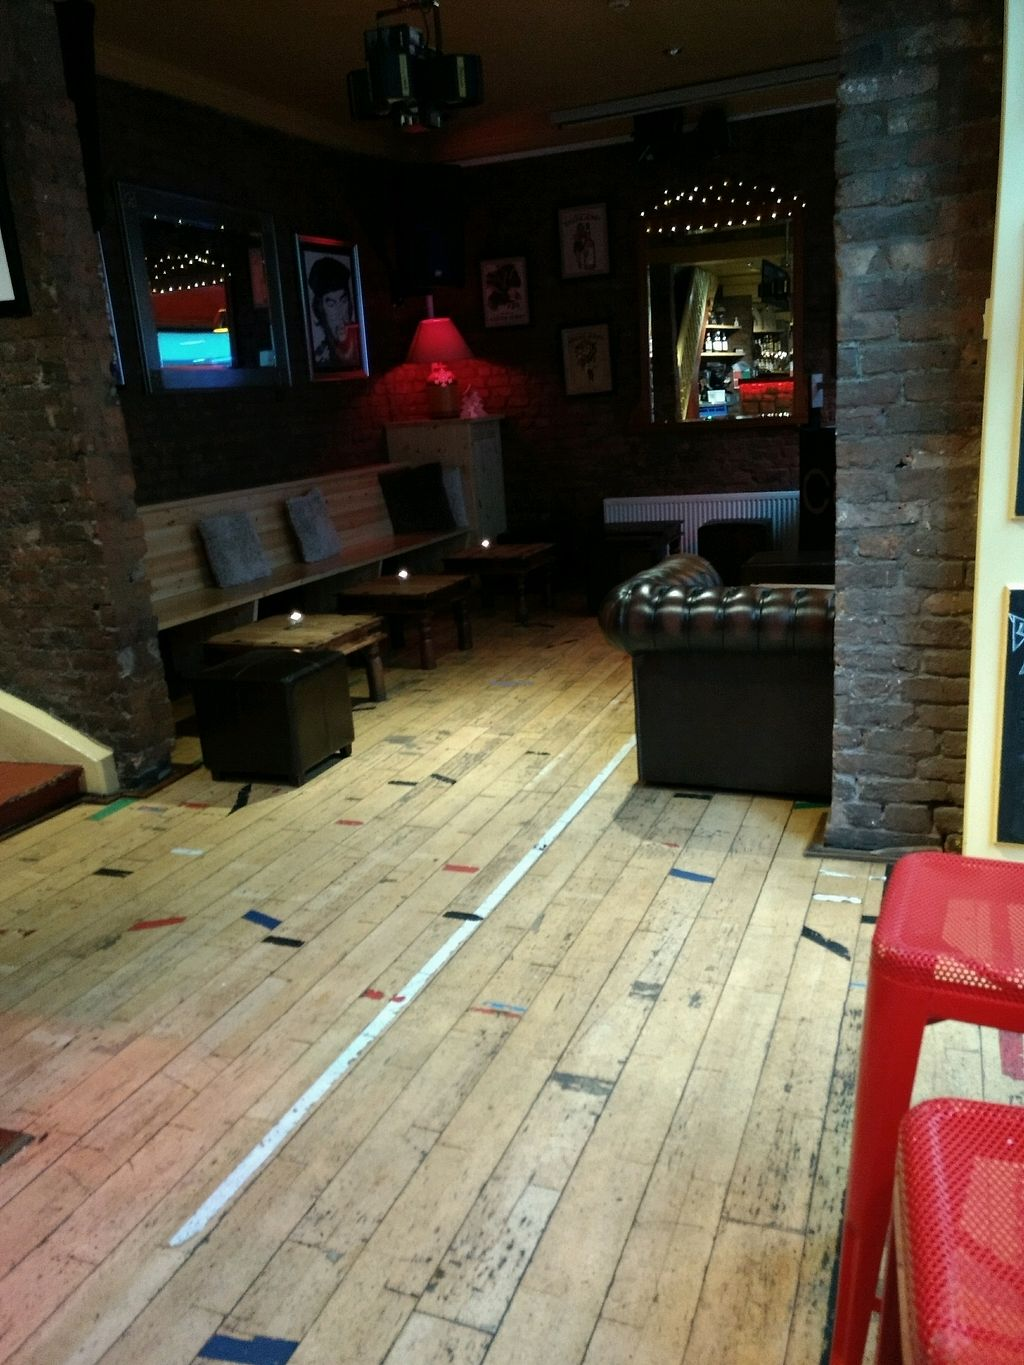 "Photo of Circle Cafe Bar  by <a href=""/members/profile/craigmc"">craigmc</a> <br/>chill <br/> December 20, 2017  - <a href='/contact/abuse/image/48280/337514'>Report</a>"